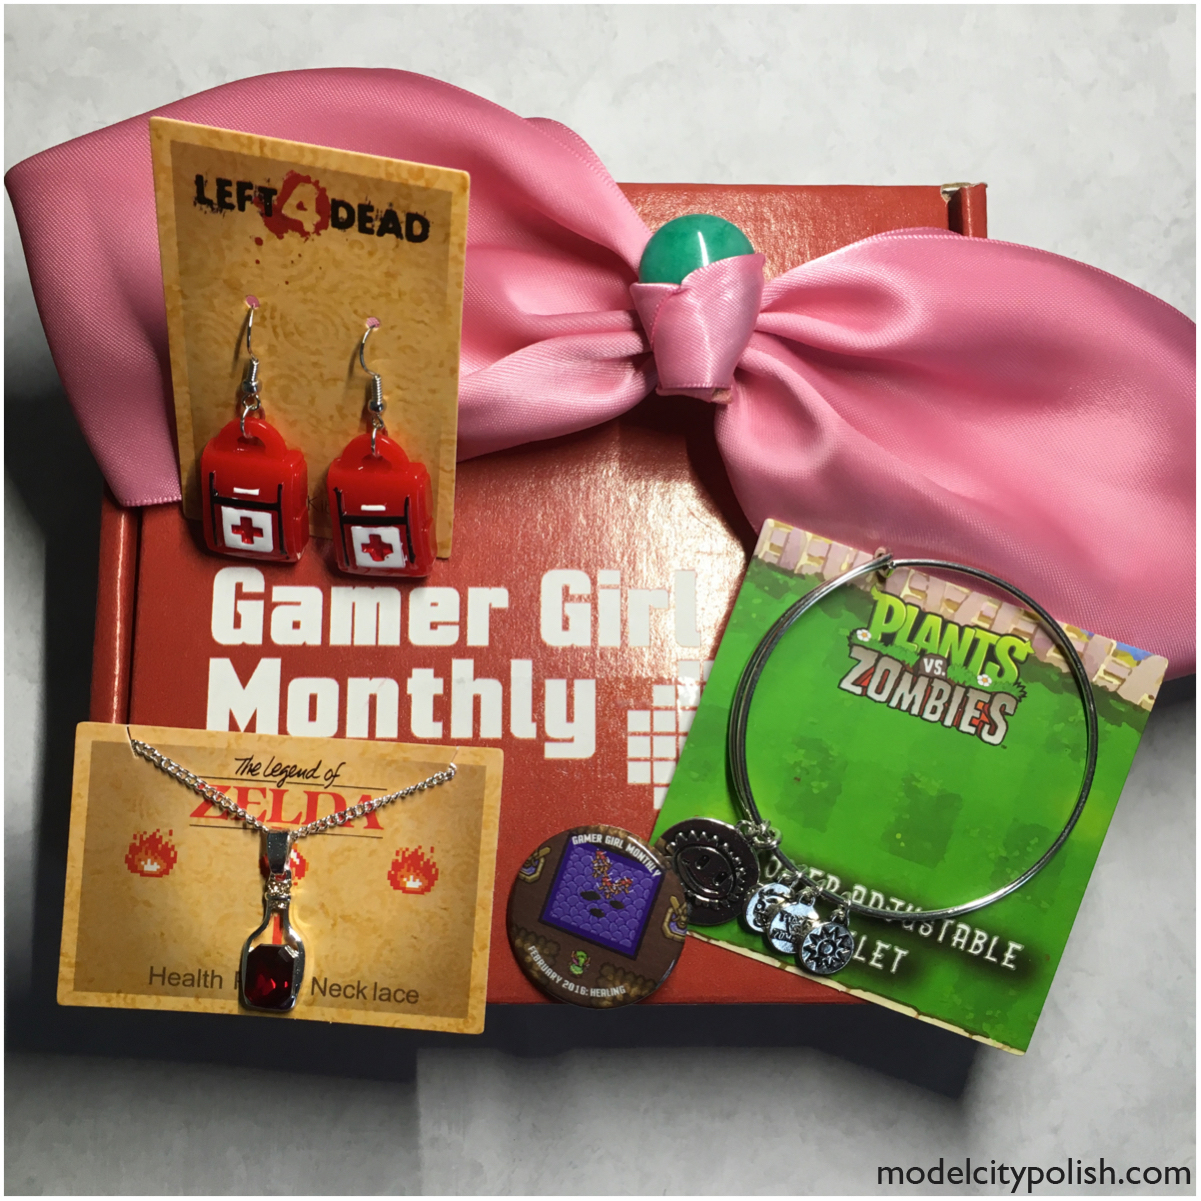 February 2016 Gamer Girl Monthly